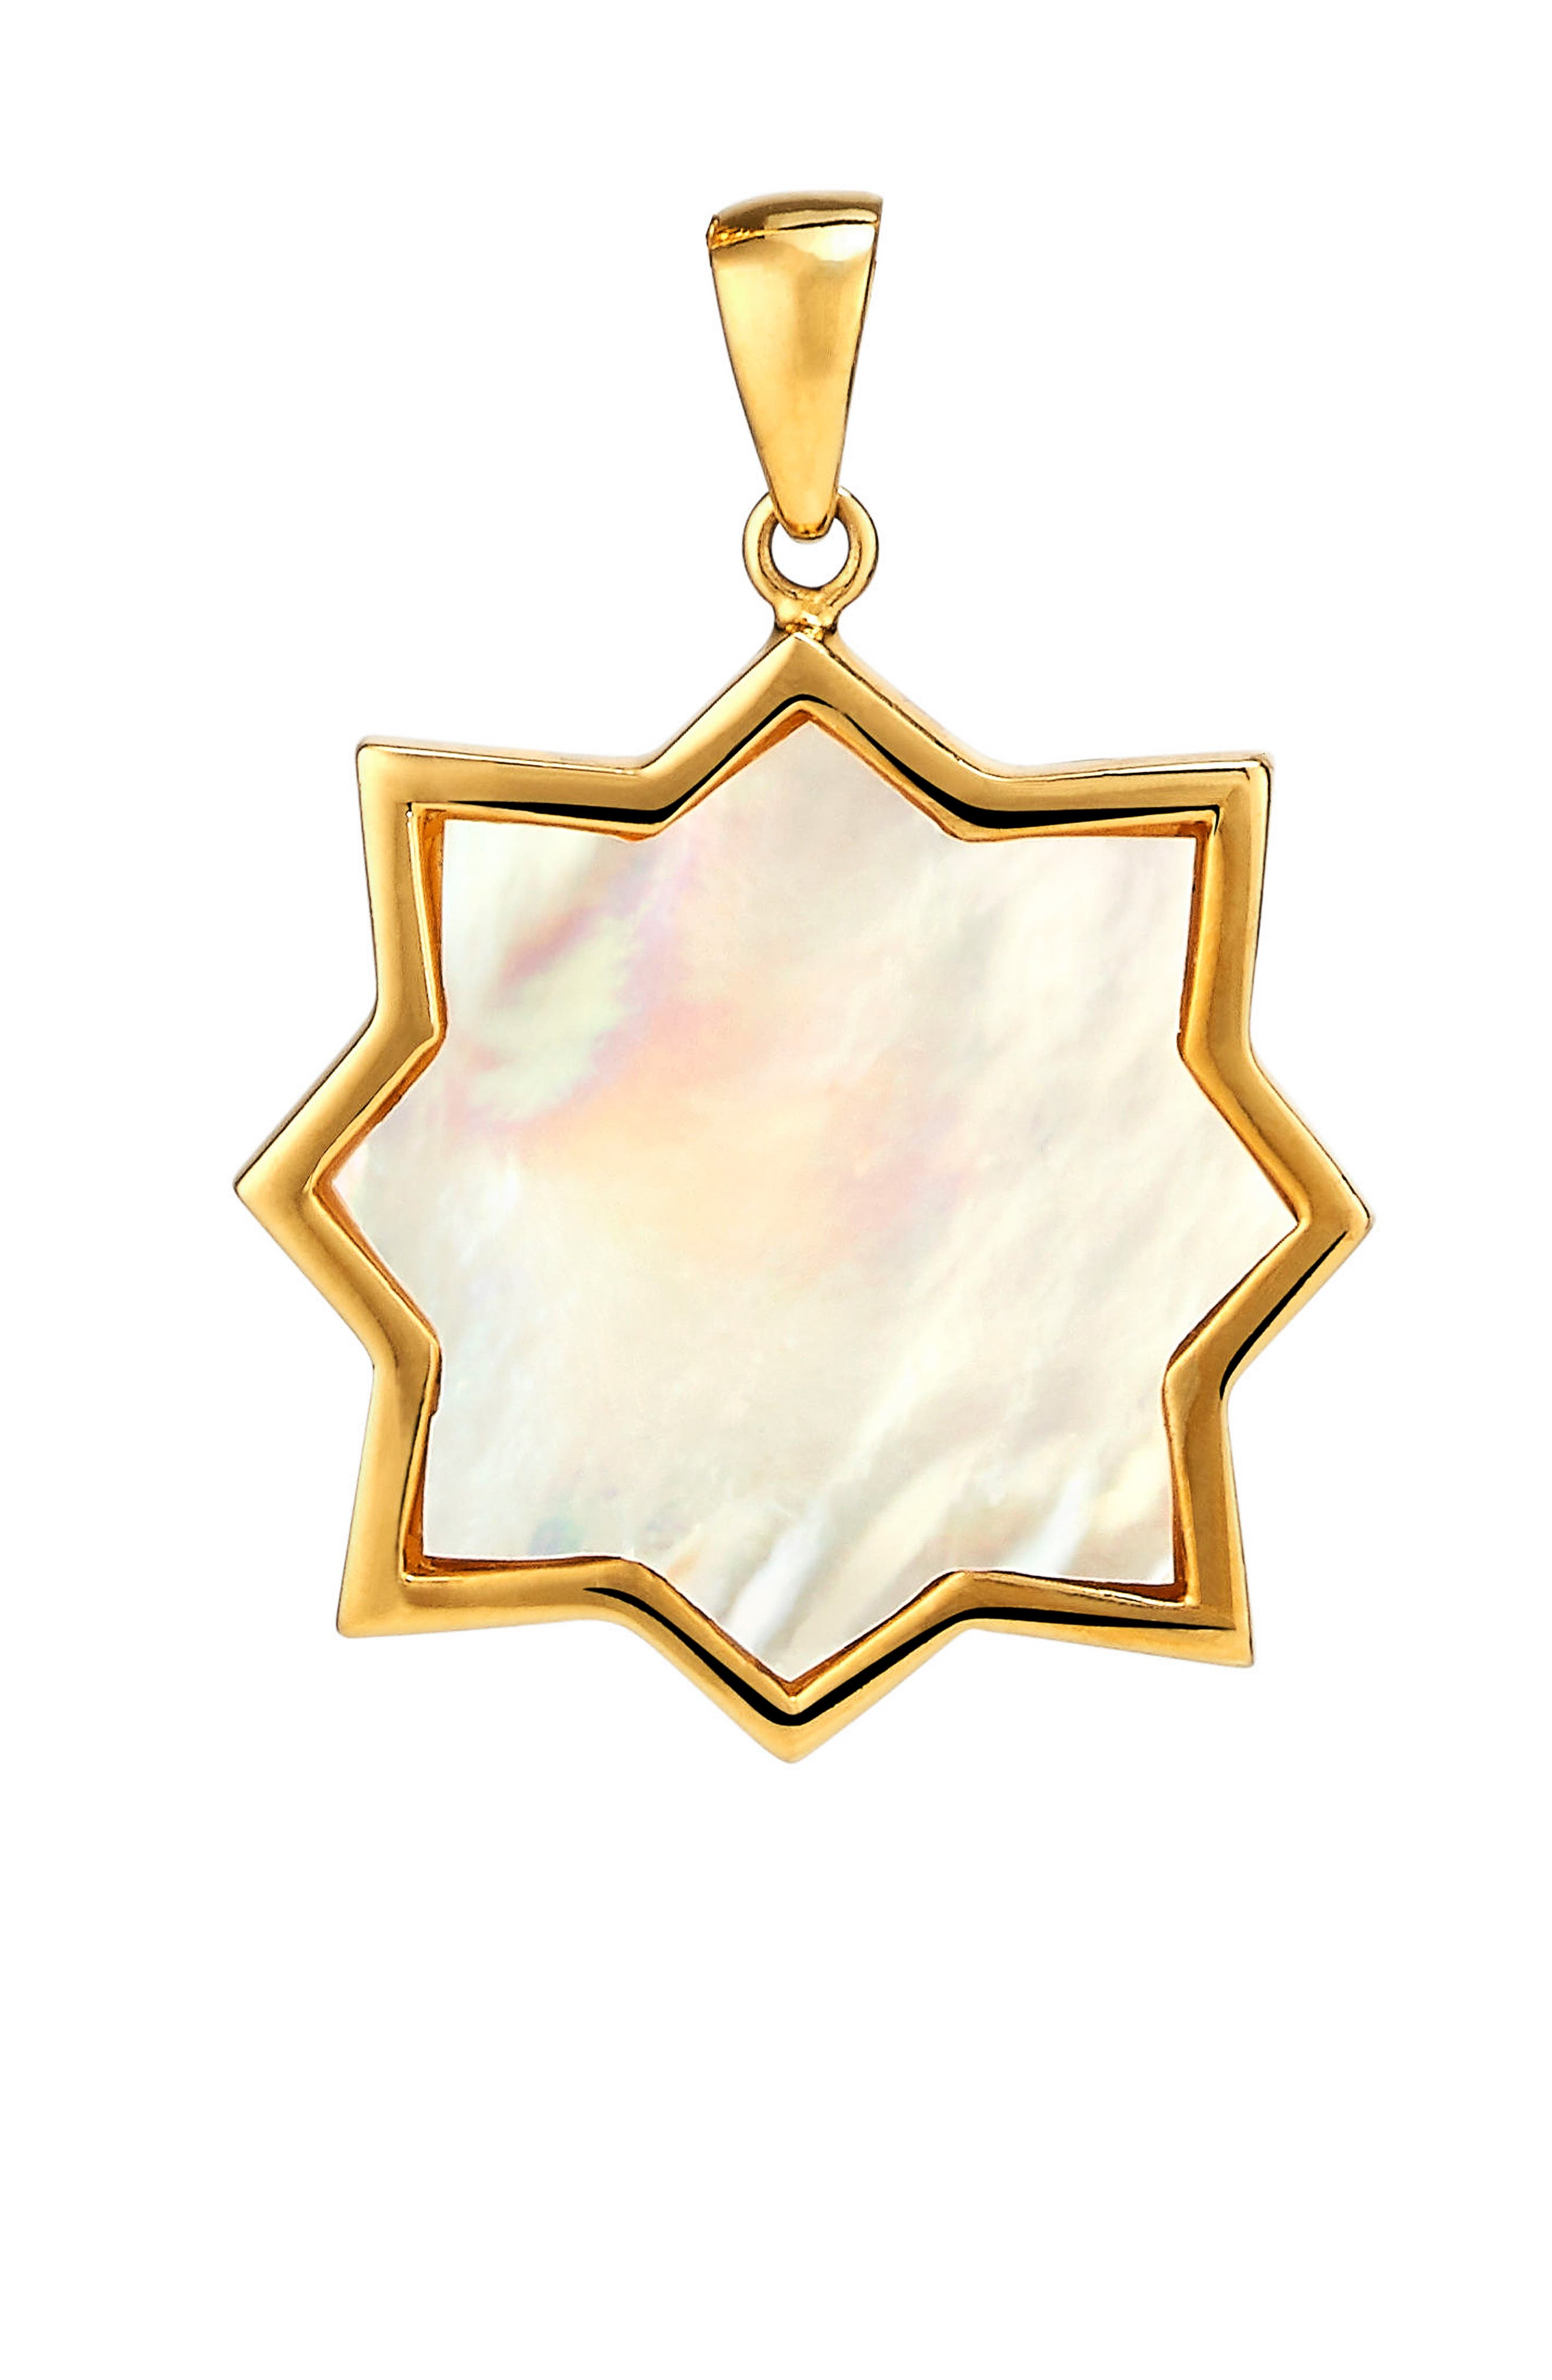 Kismet Large Mother-of Pearl Charm,                         Main,                         color, 100